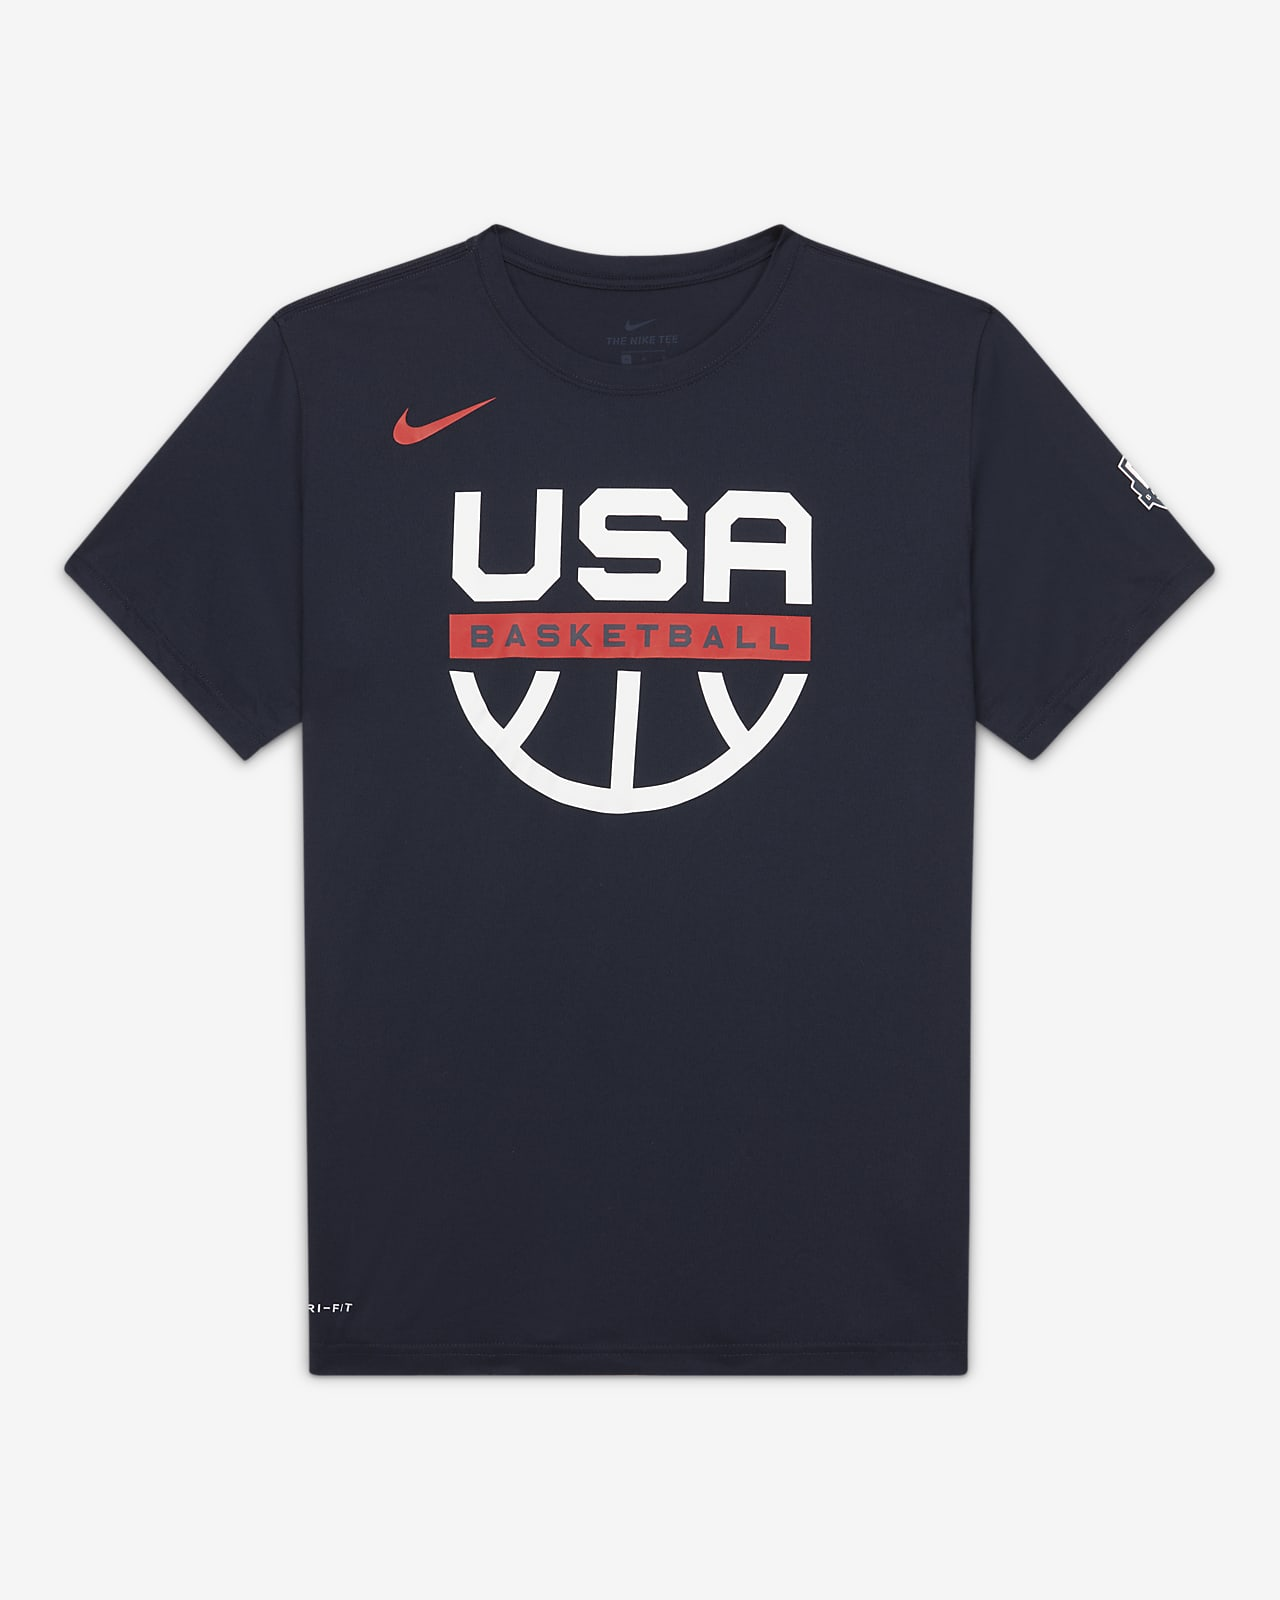 USAB Nike Dri-FIT Men's Basketball Practice T-Shirt